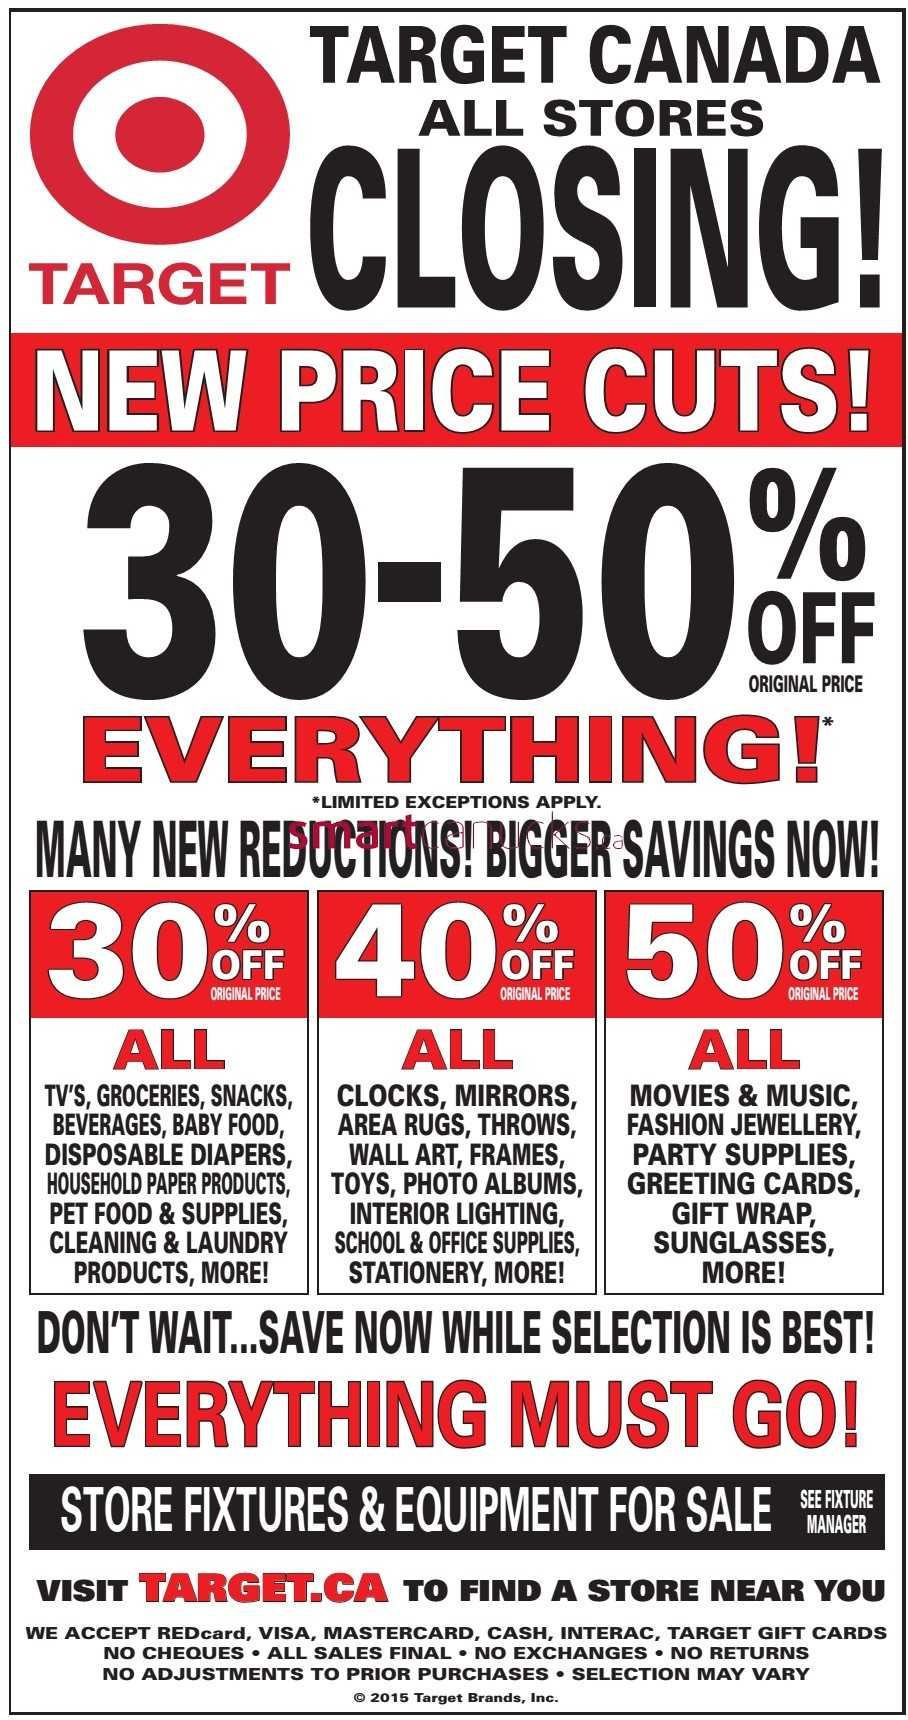 Sale Flyer For Target Target Closing Sale New Price